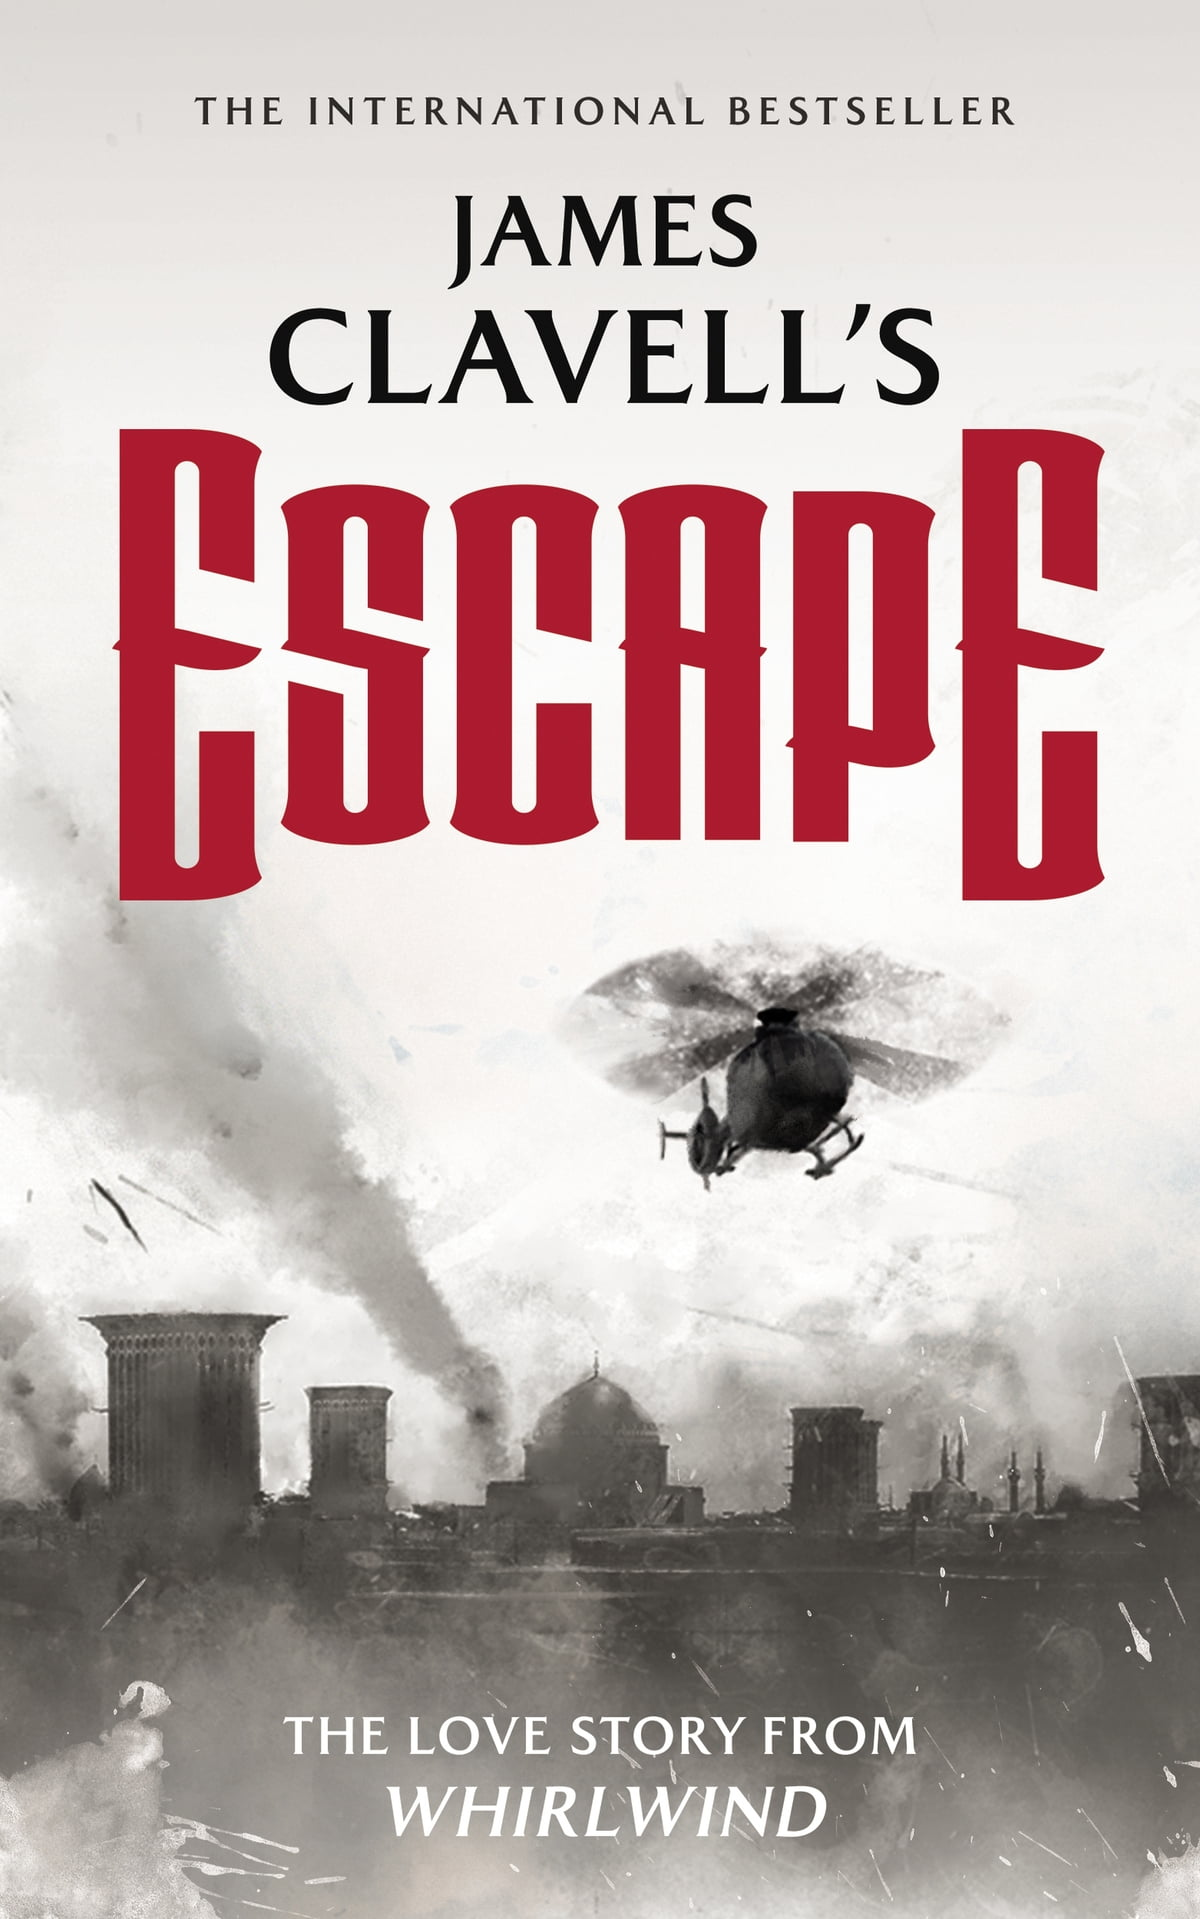 More books by James Clavell